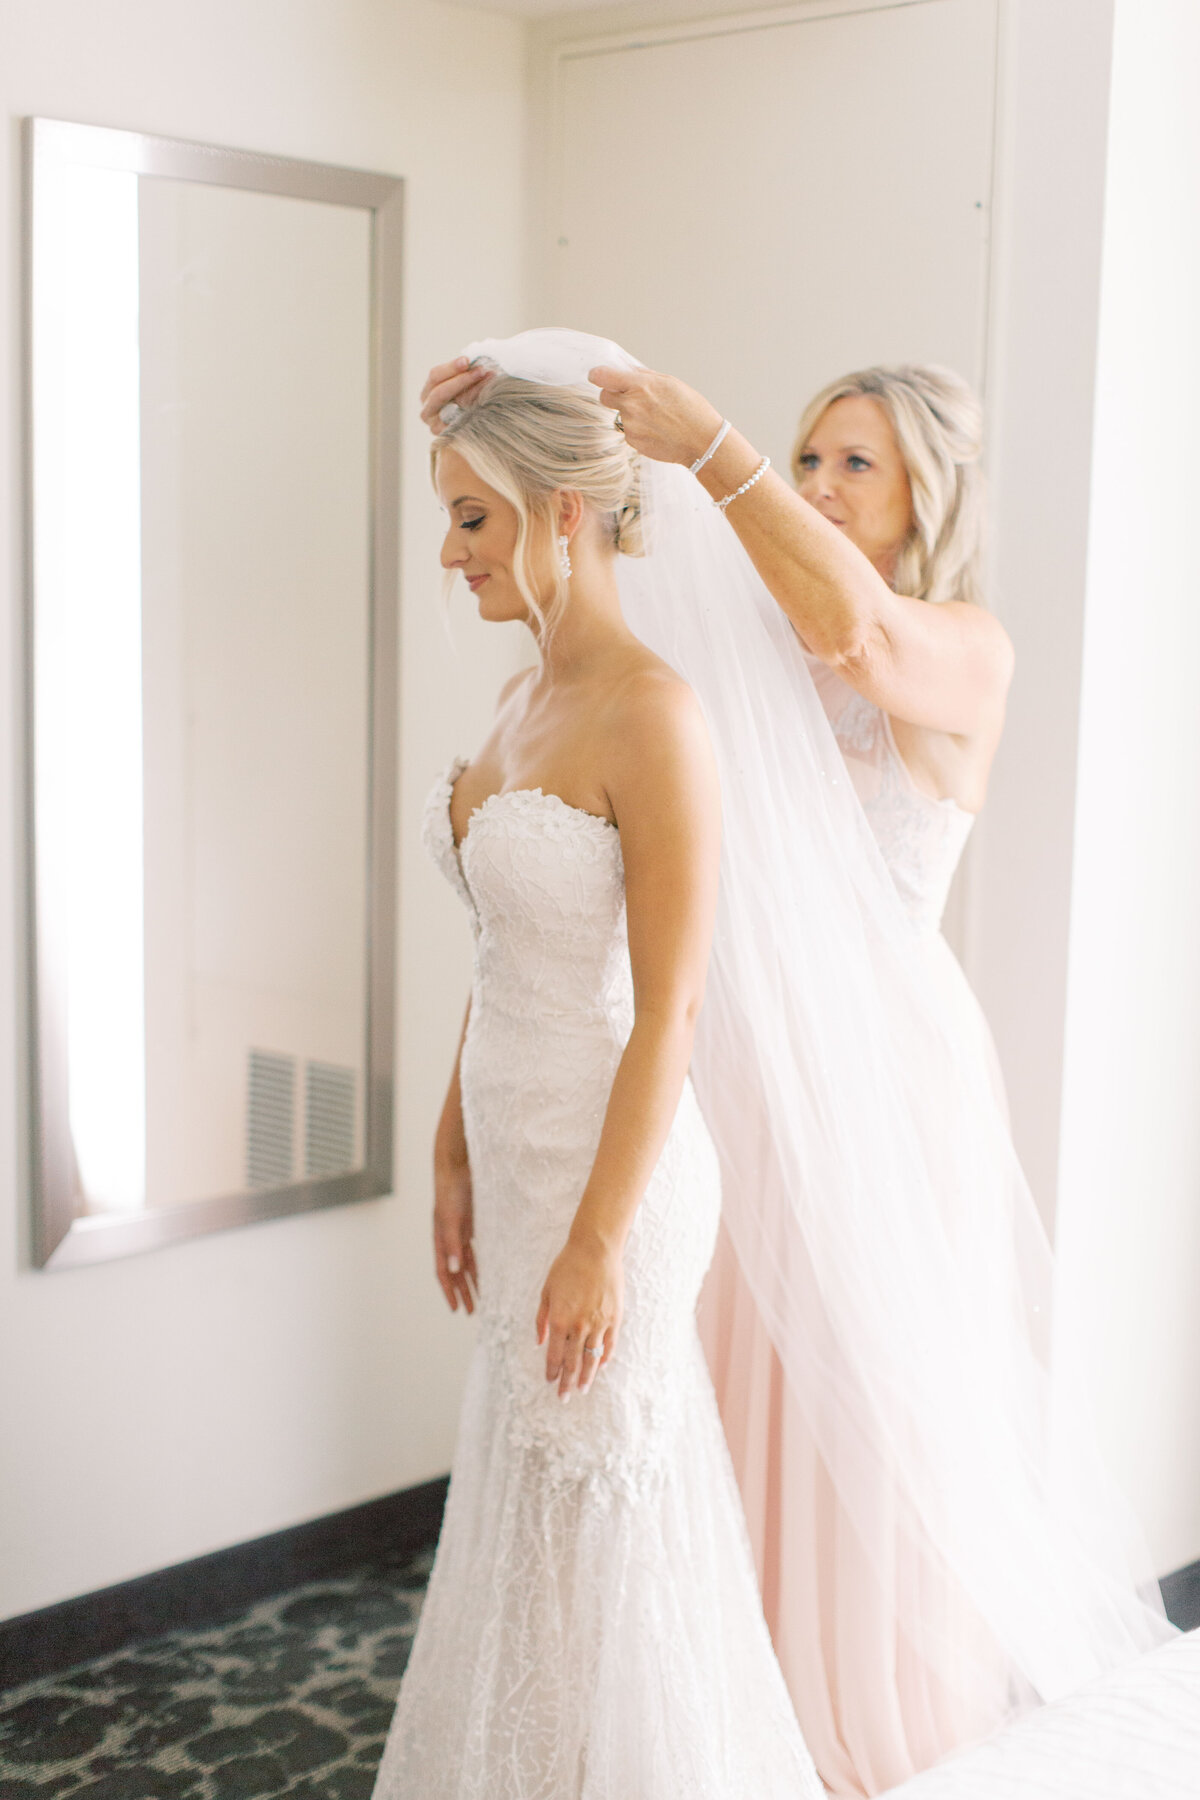 Melton_Wedding__Middleton_Place_Plantation_Charleston_South_Carolina_Jacksonville_Florida_Devon_Donnahoo_Photography__0116